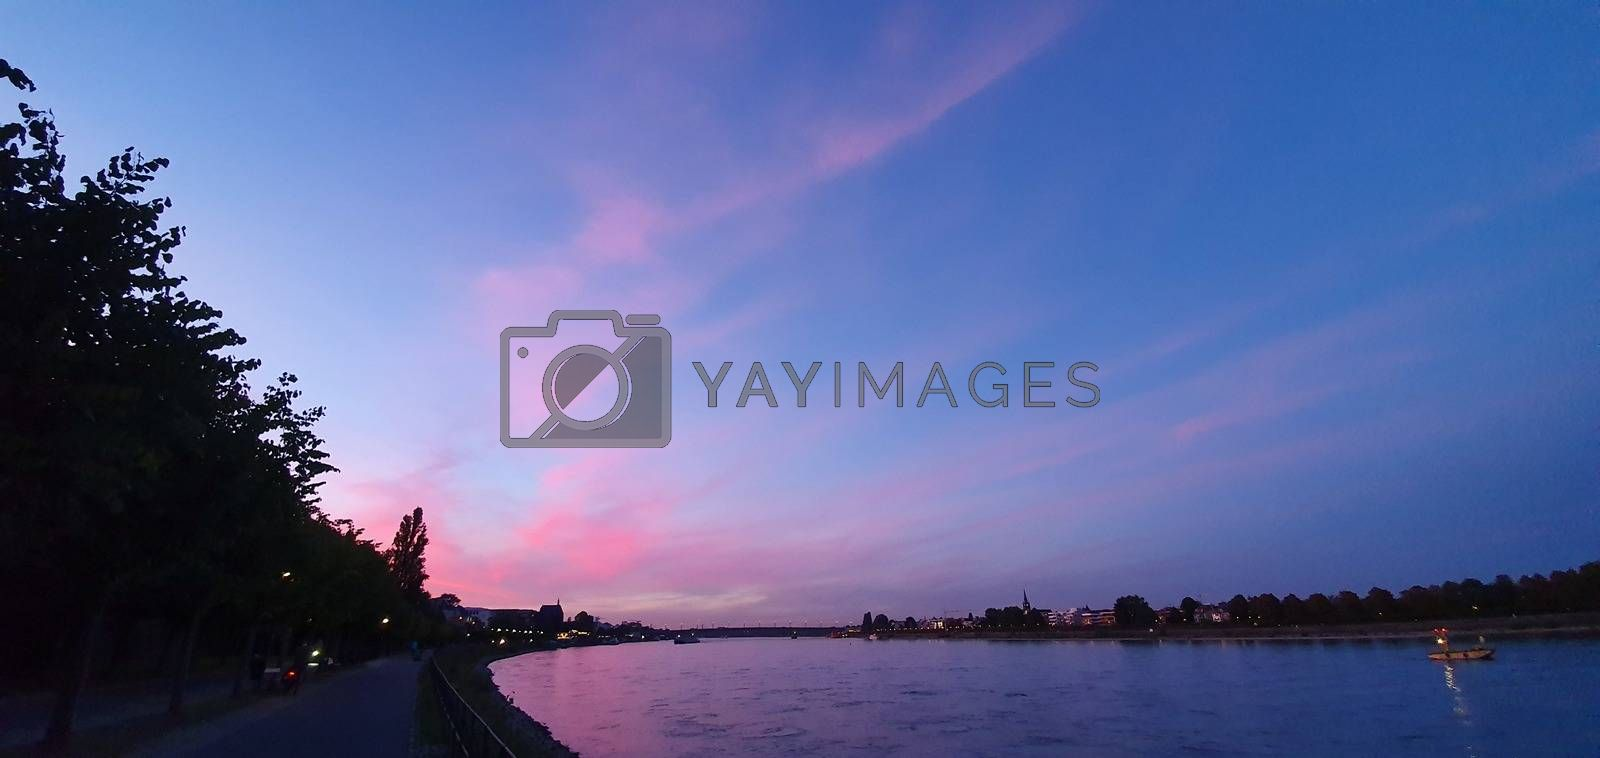 Promenade by the river Rheine in Bonn with a beautiful pink sunset sky.